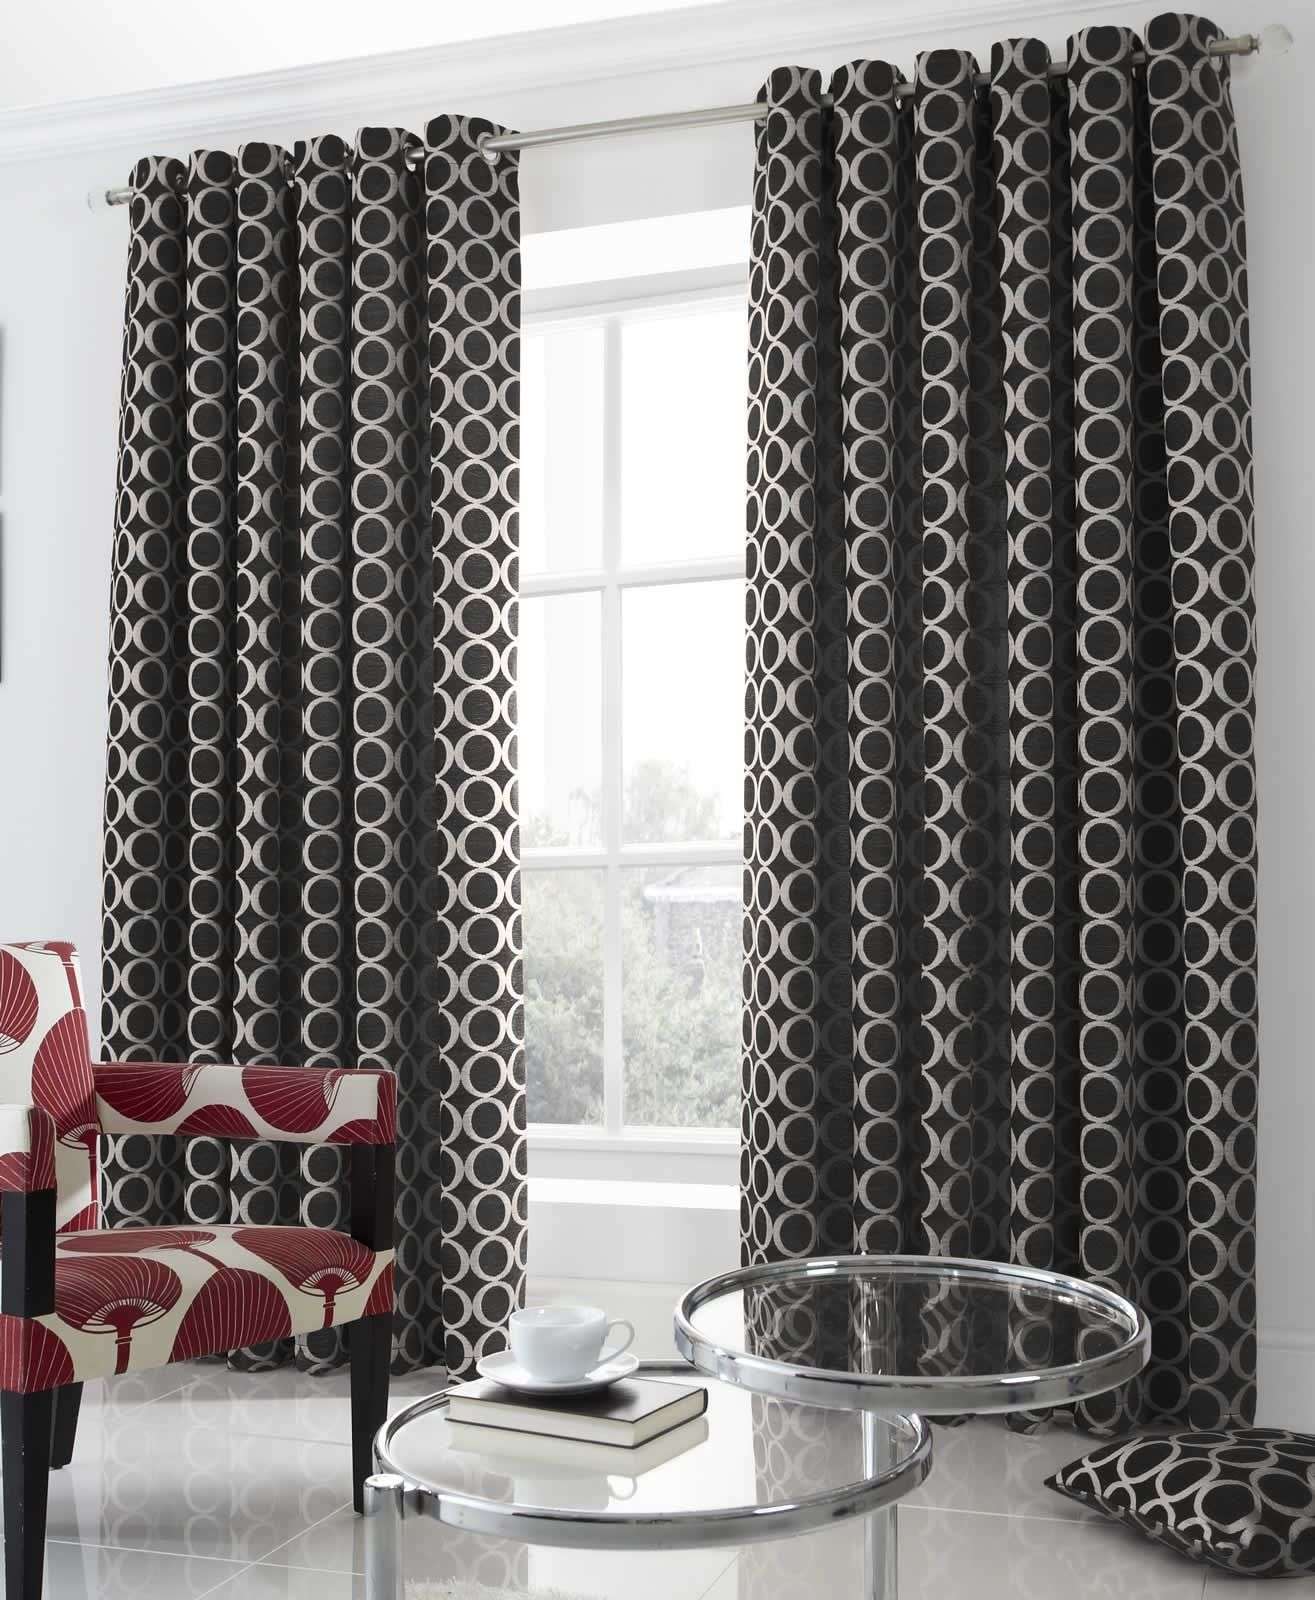 Kitchen Curtains Amazon Co Uk: Black Cream Heavy Weight Lined Eyelet Curtains, Ready Made